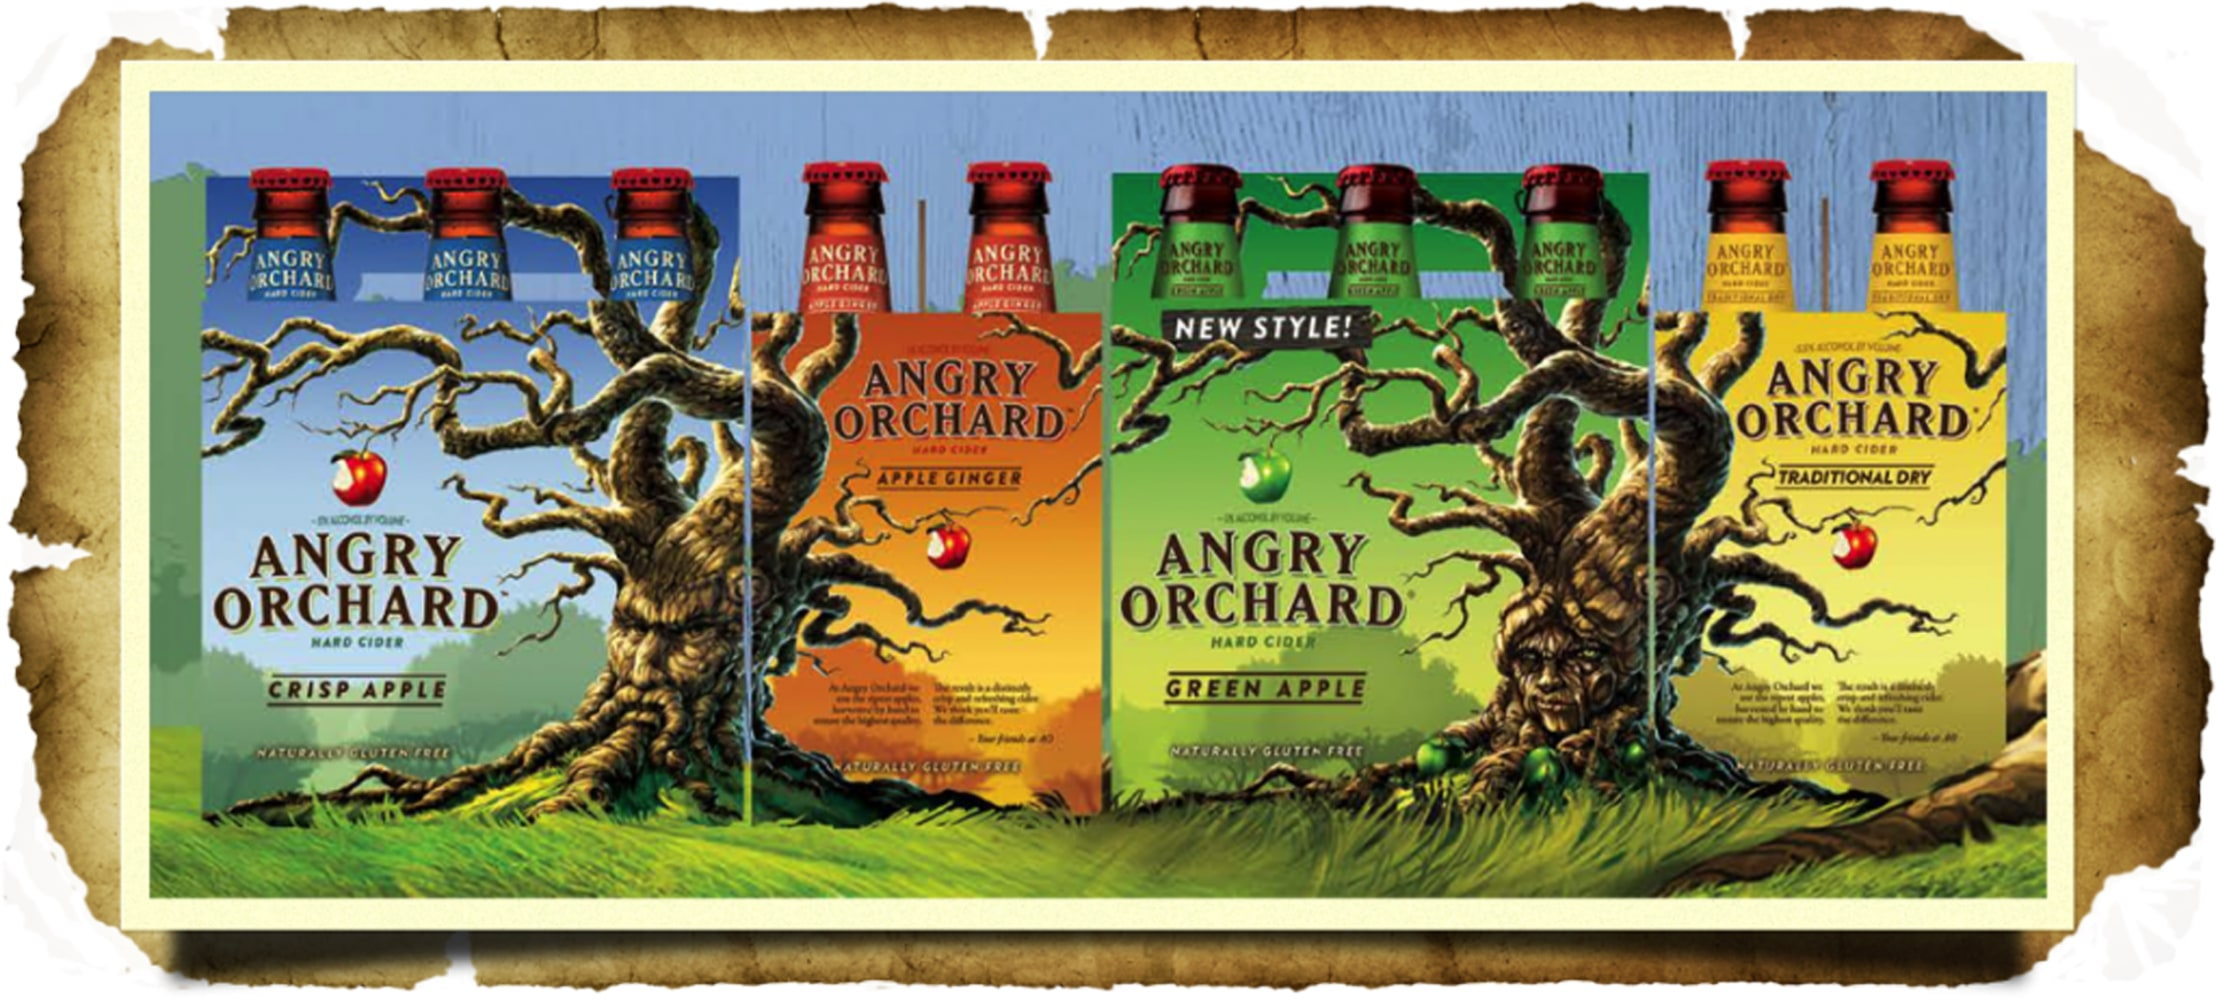 Image result for angry orchard